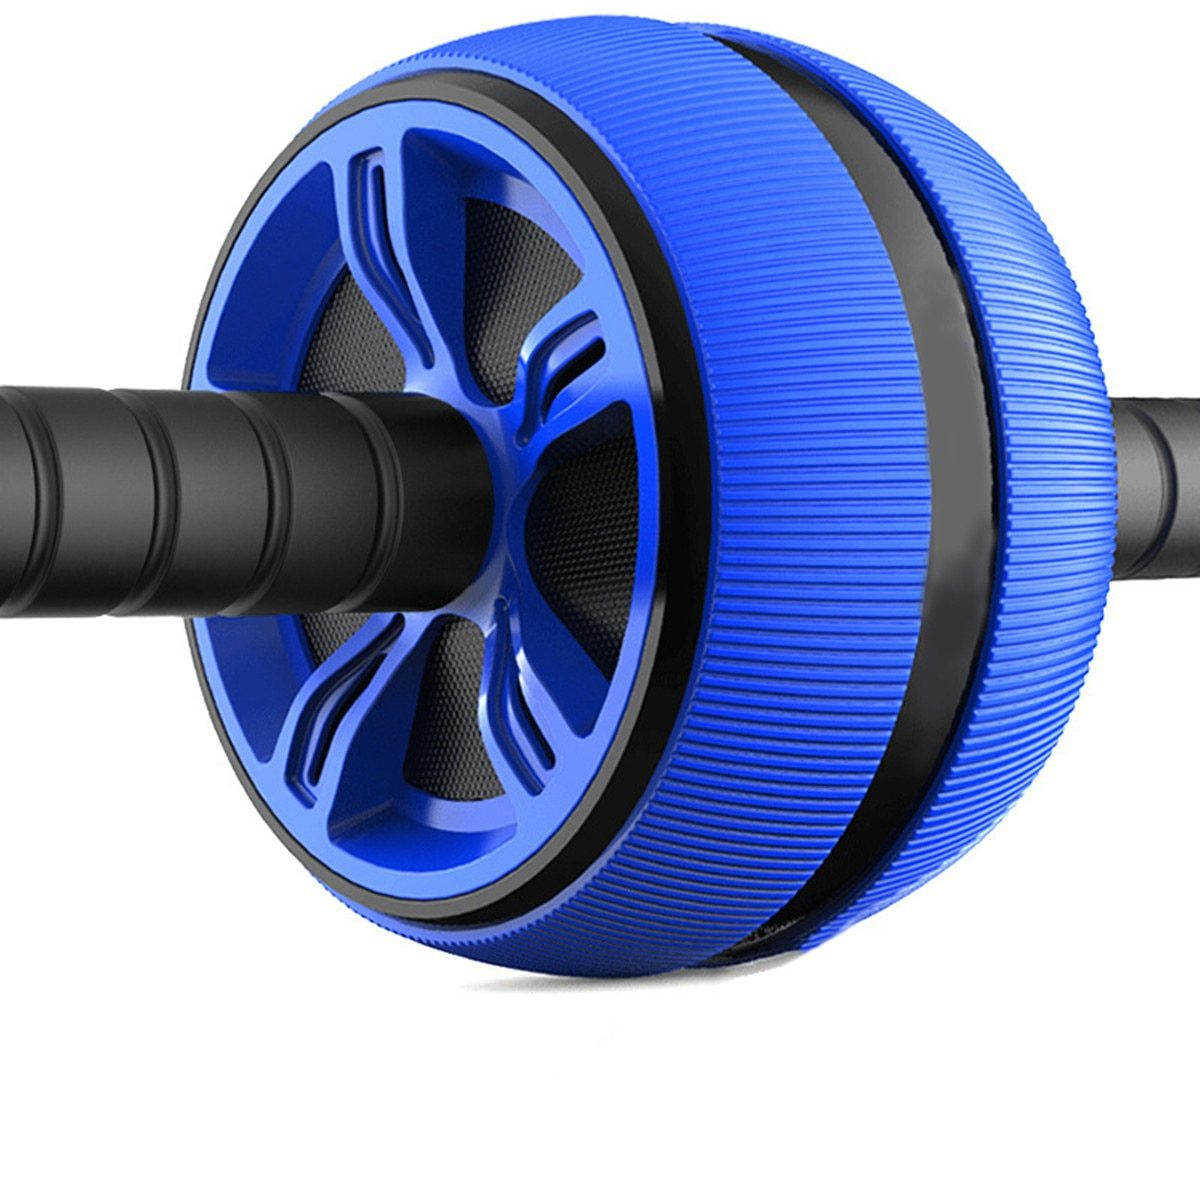 ABS Abdominal Roller Exercise Wheel Fitness Equipment - outoff